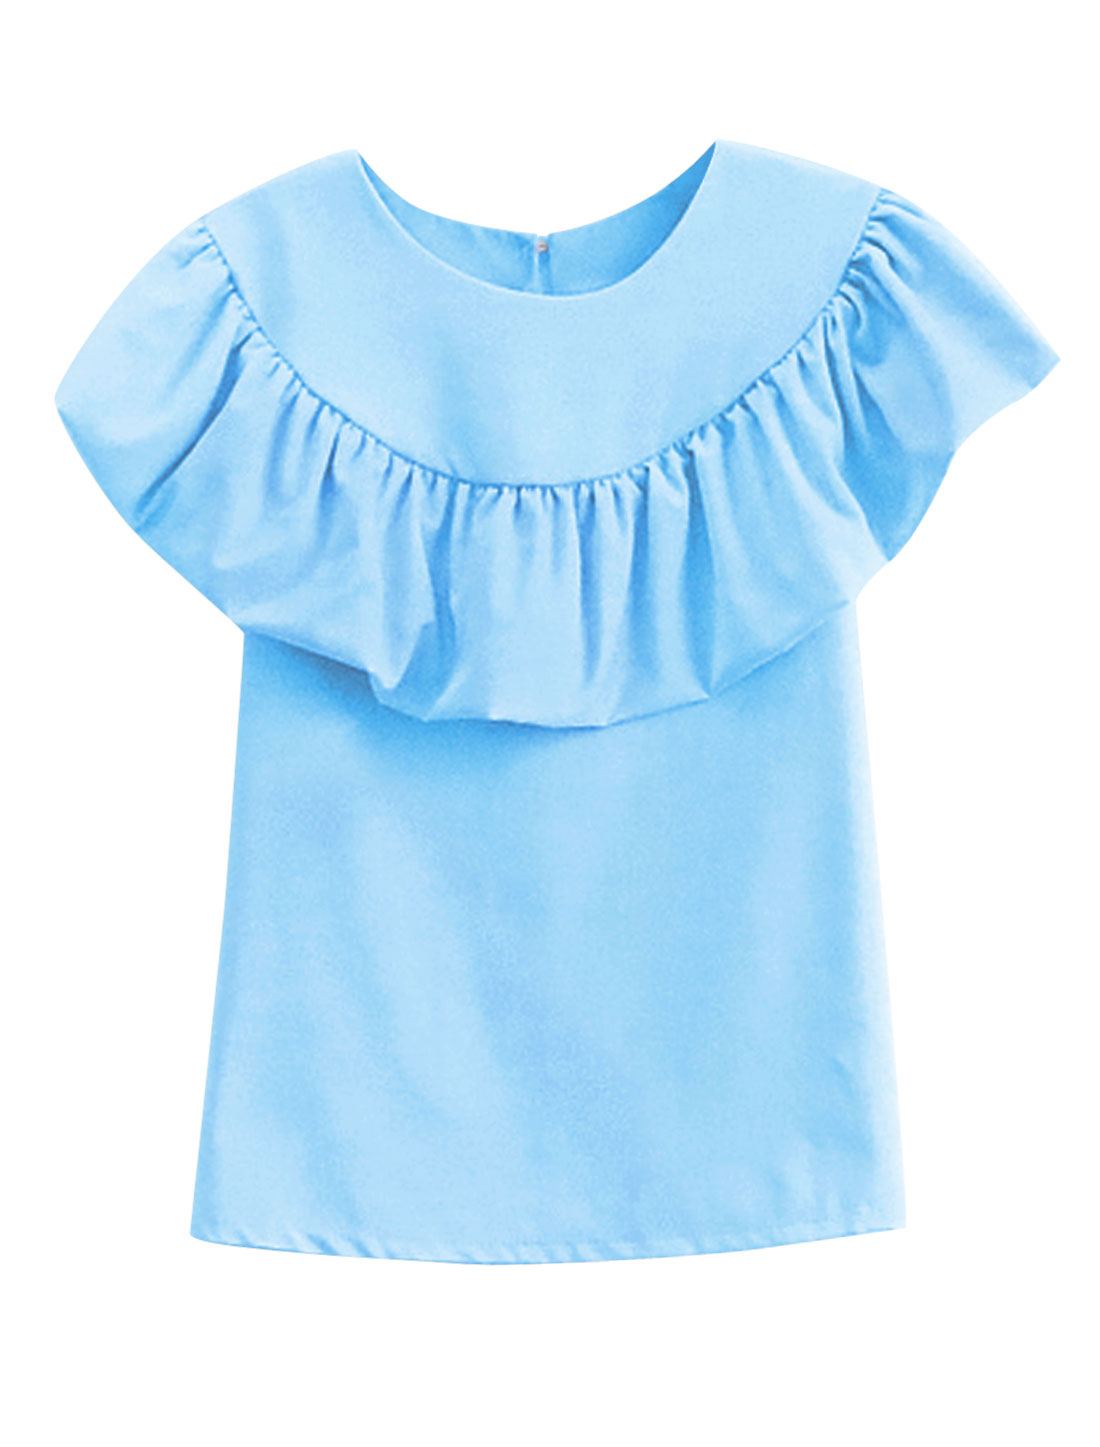 Lady Summer Sleeveless Flouncing Style One Button Back Top Sky Blue XS